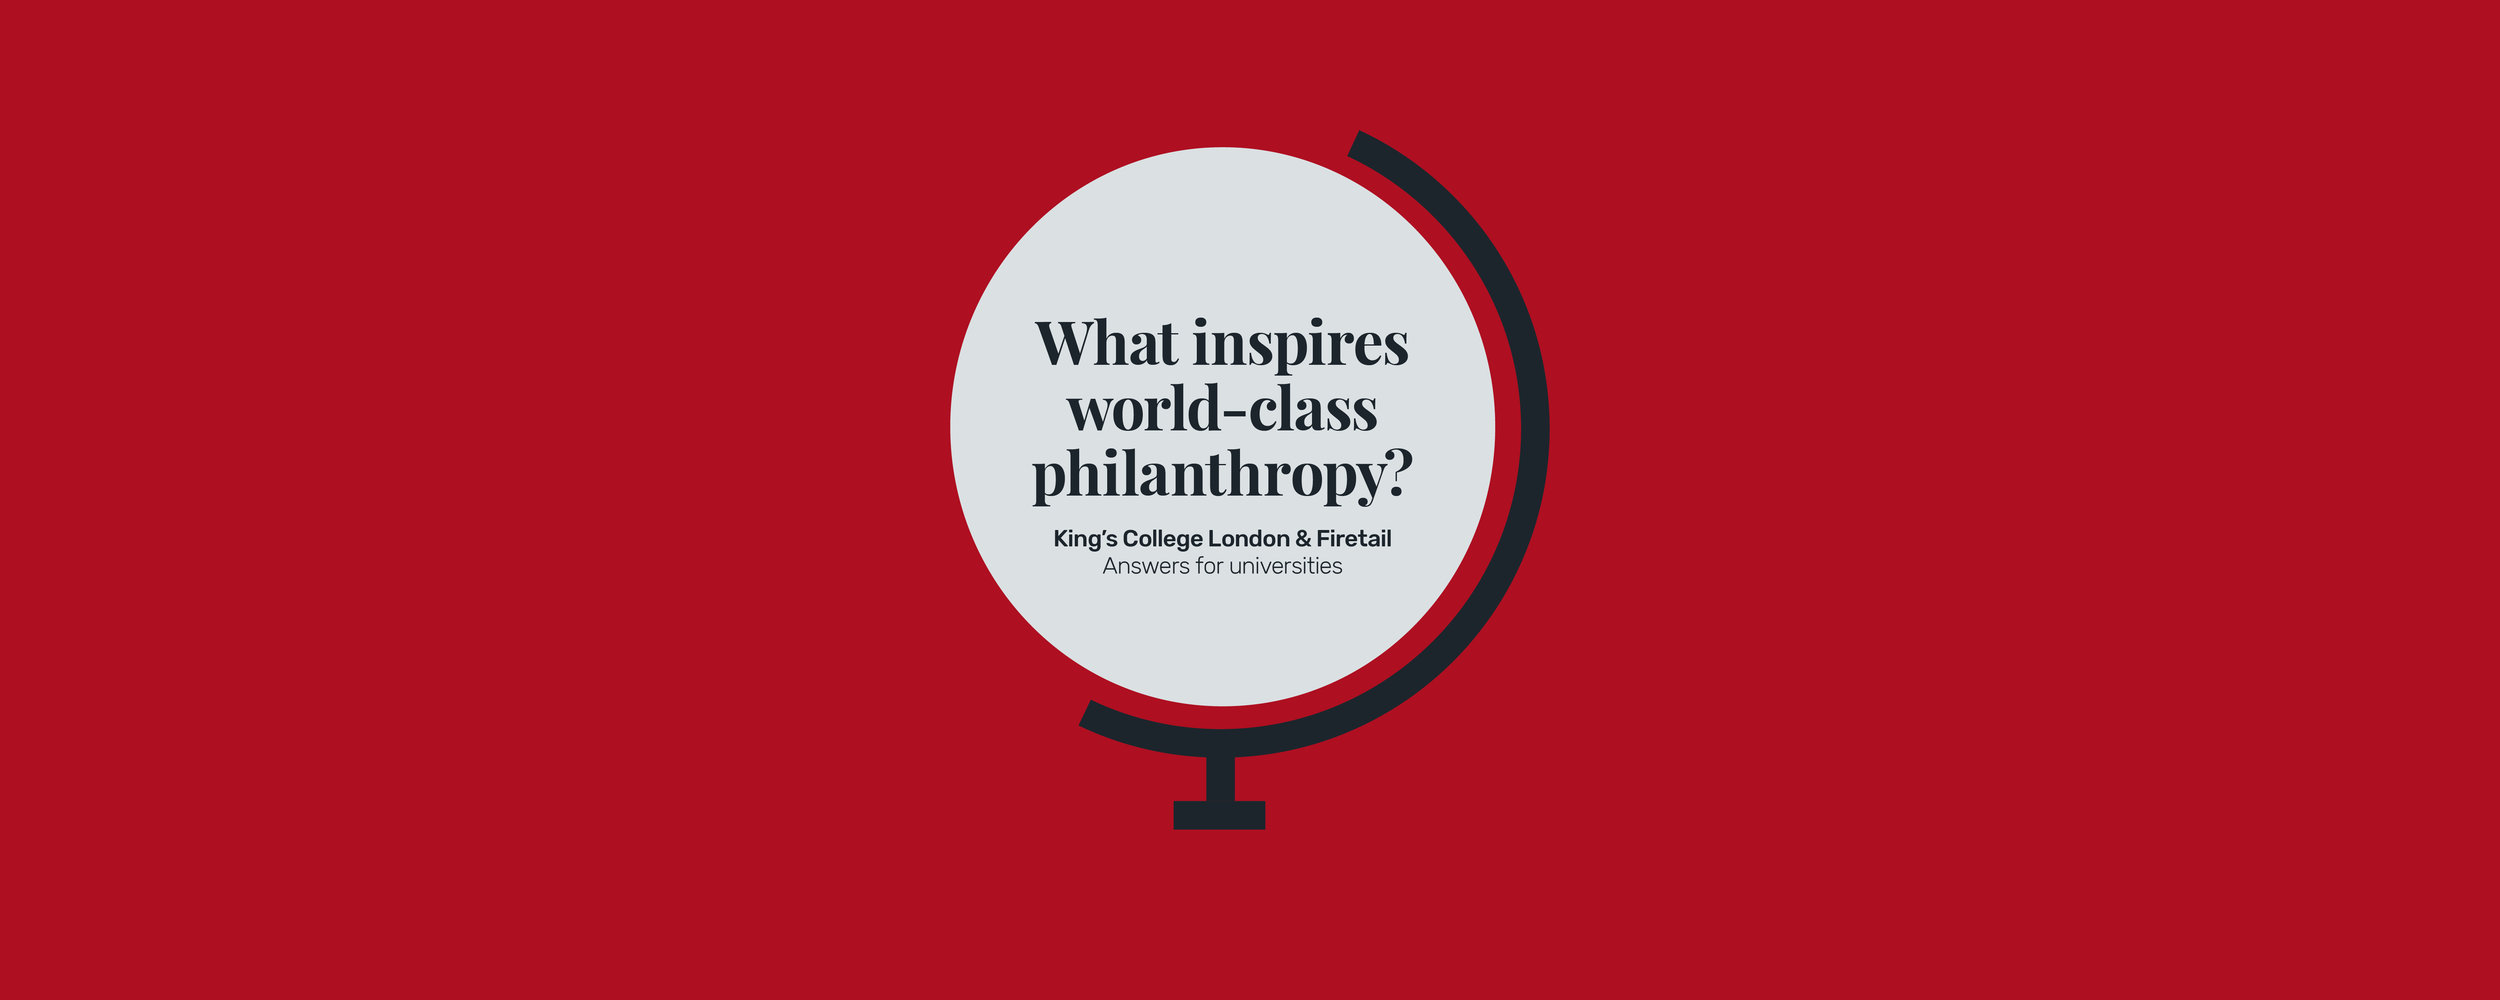 What inspires world class philanthropy